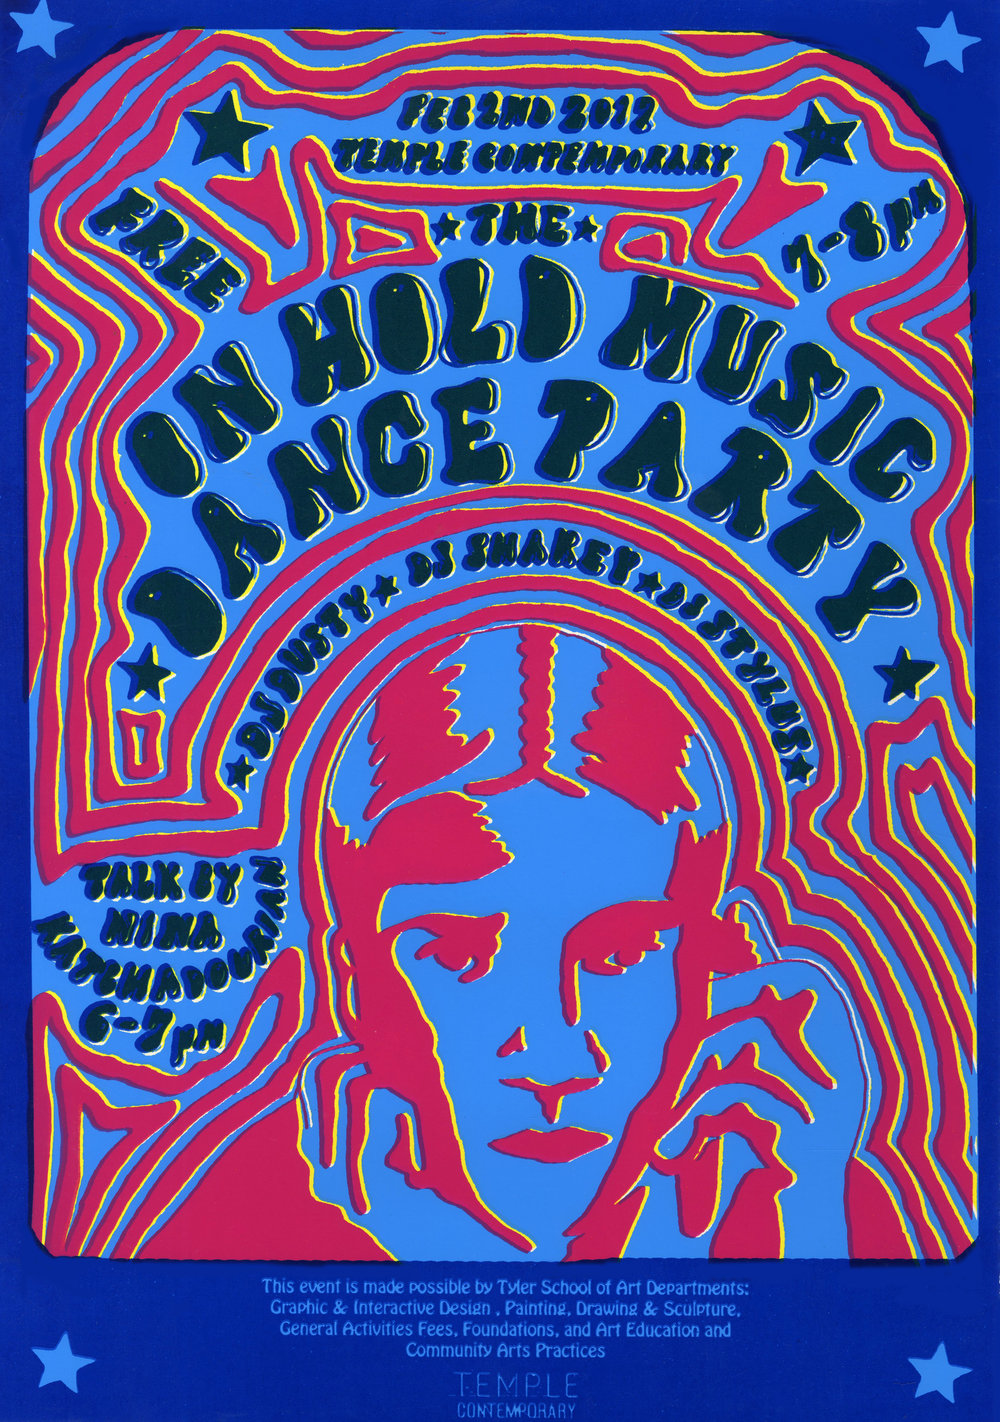 "On Hold Dance Party by Nina Katchadourian at Temple Contemporary  4 color silkscreen poster design by  Kees Holterman .  17""x11"" Edition of 35. Printer: David Love. 2017"